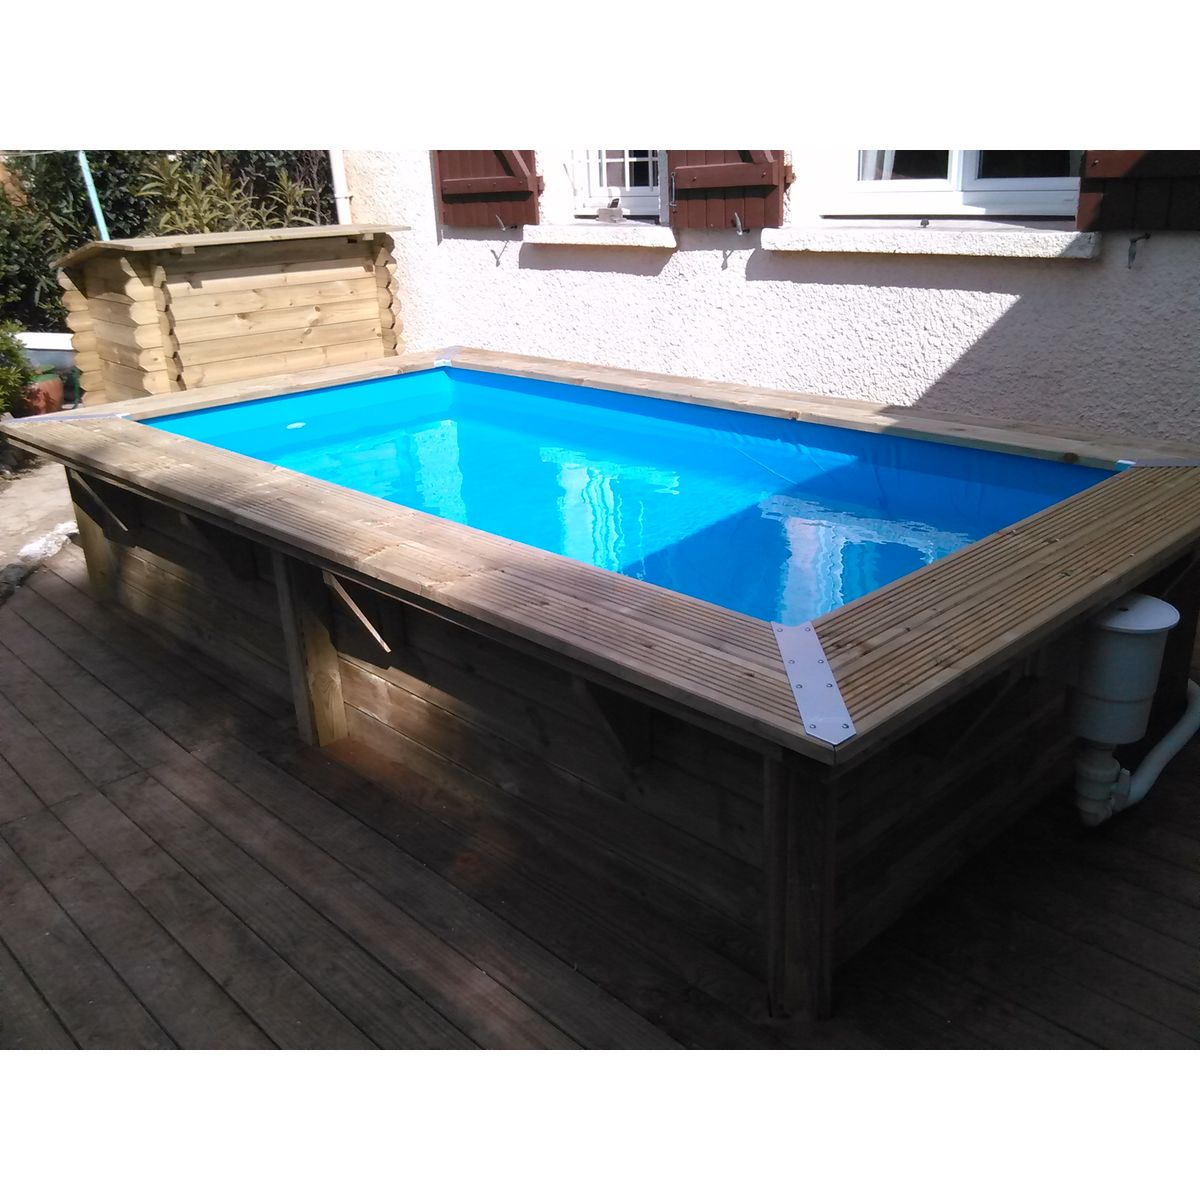 Piscine bois topiwall for Piscine hors sol bois semi enterree